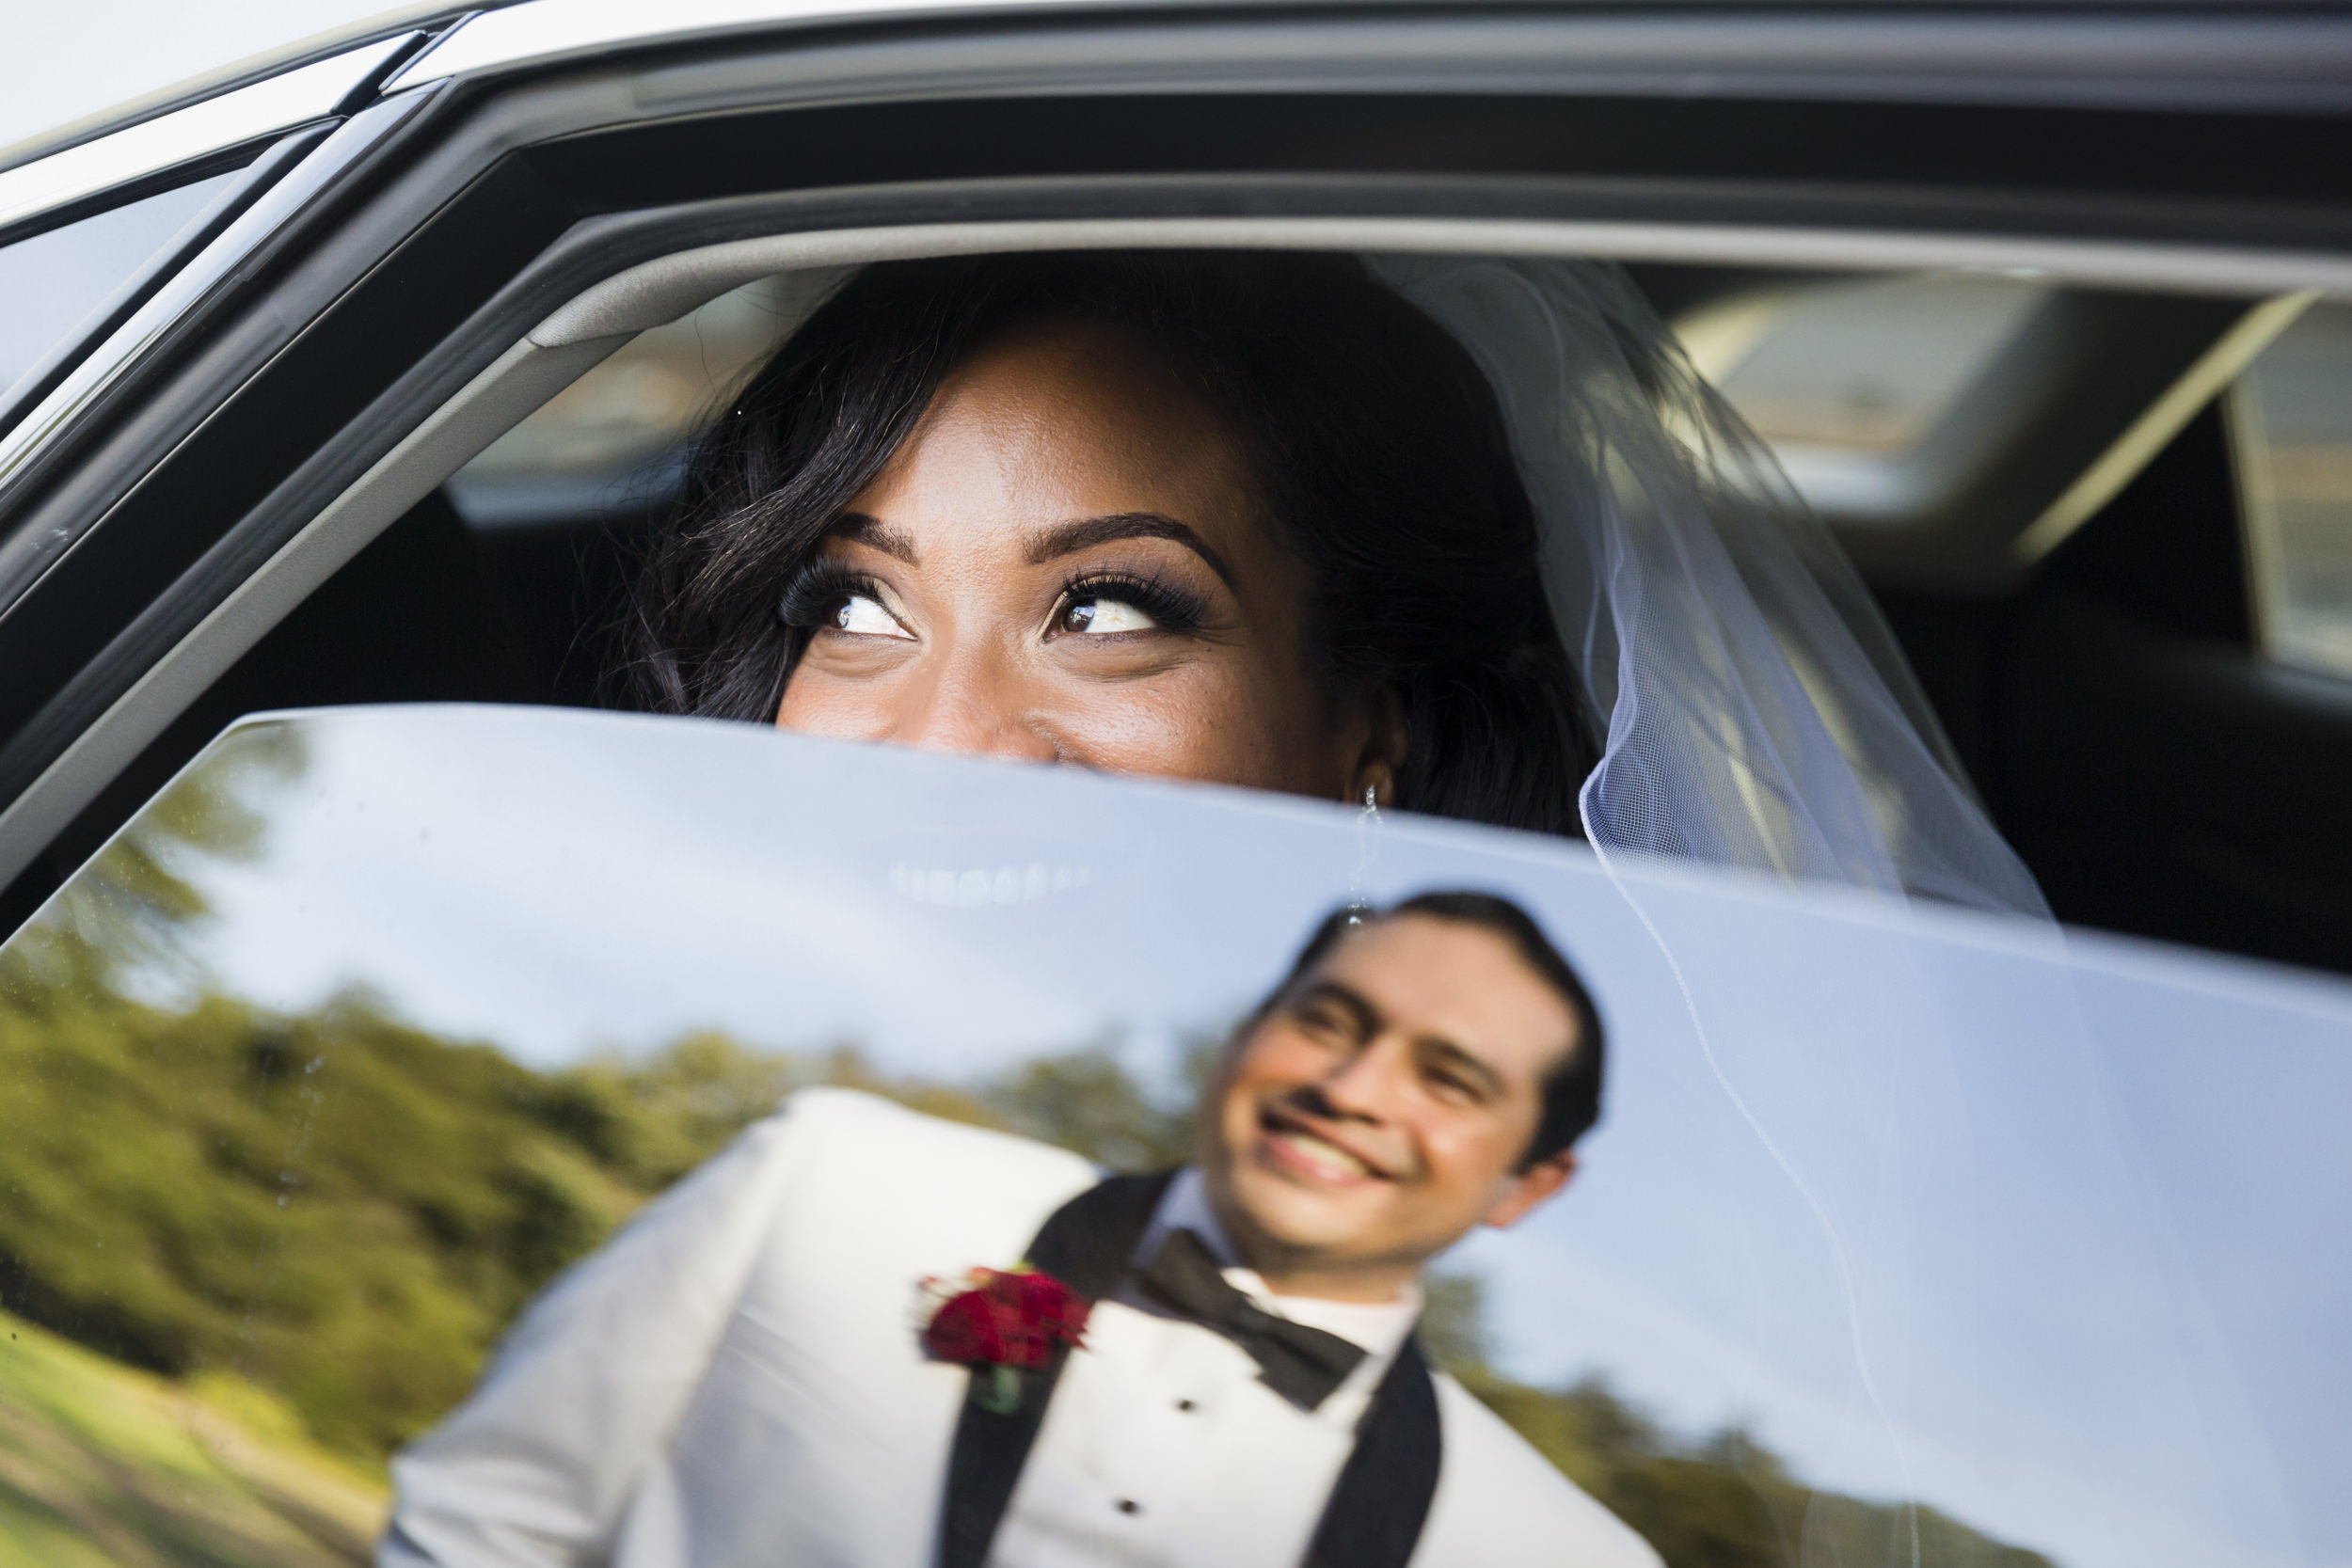 groom-reflection-window-looking-at-bride-1.jpg